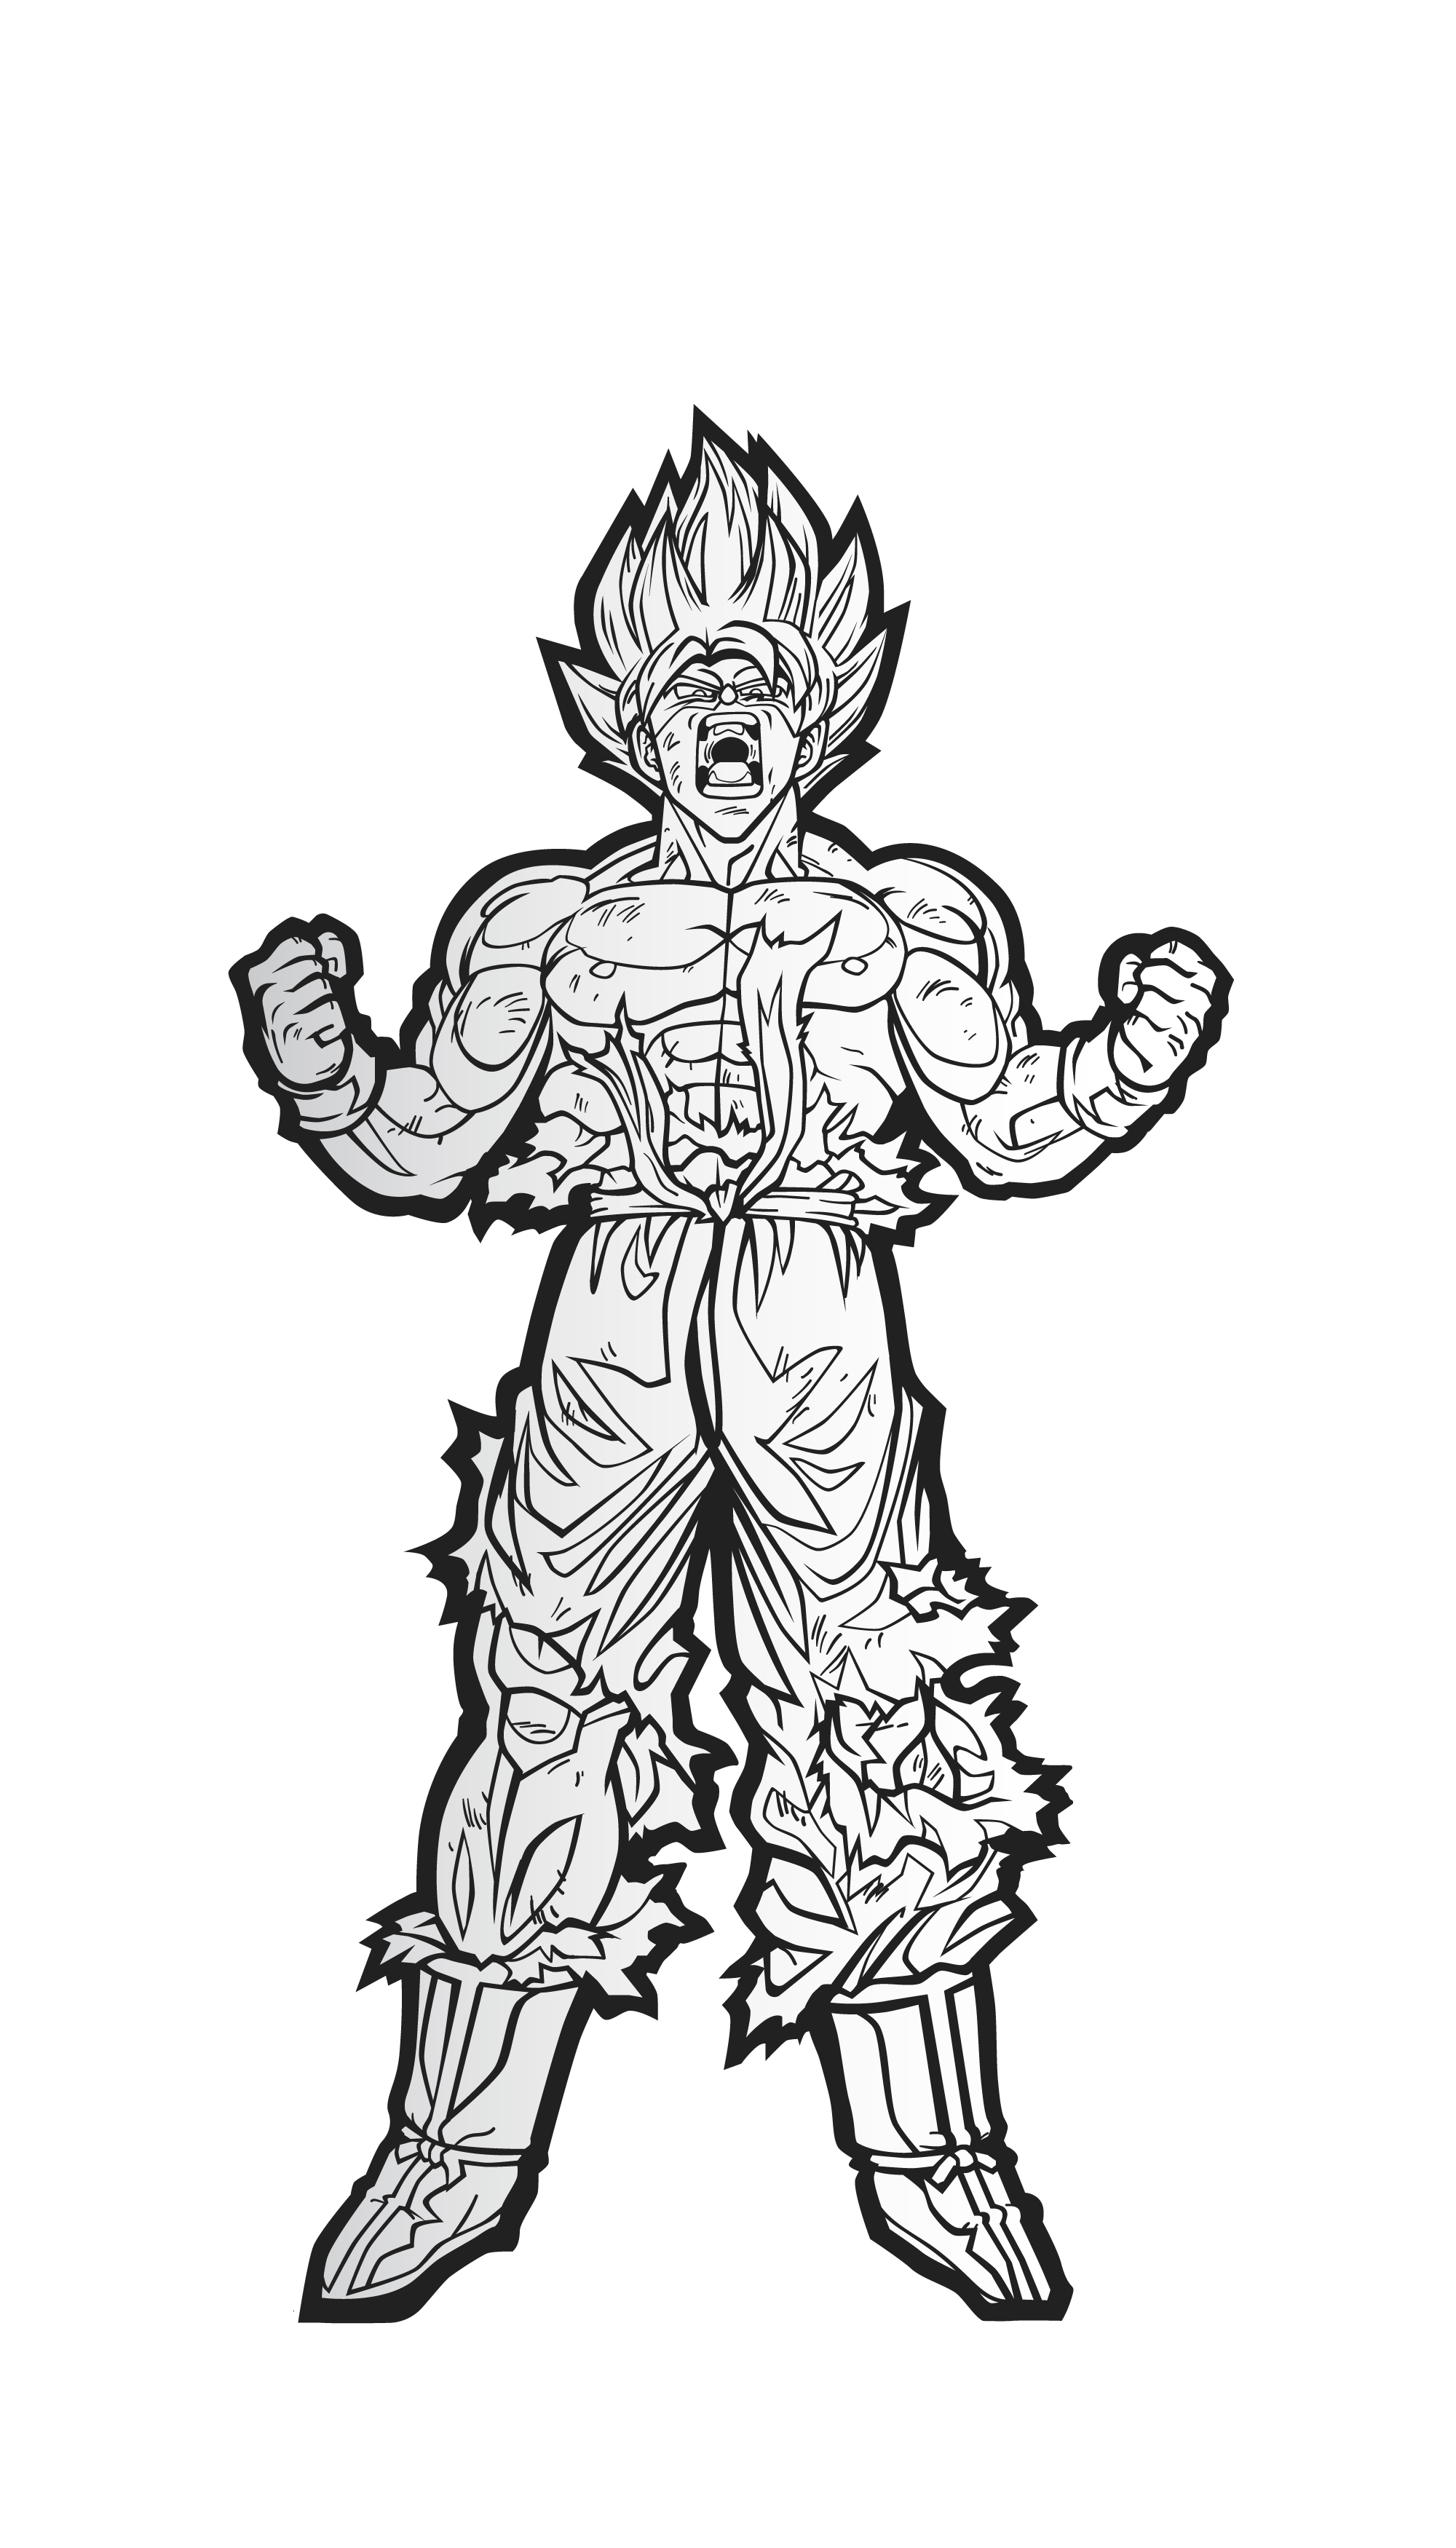 Drawing dbz black and white. Dragon ball z figpin